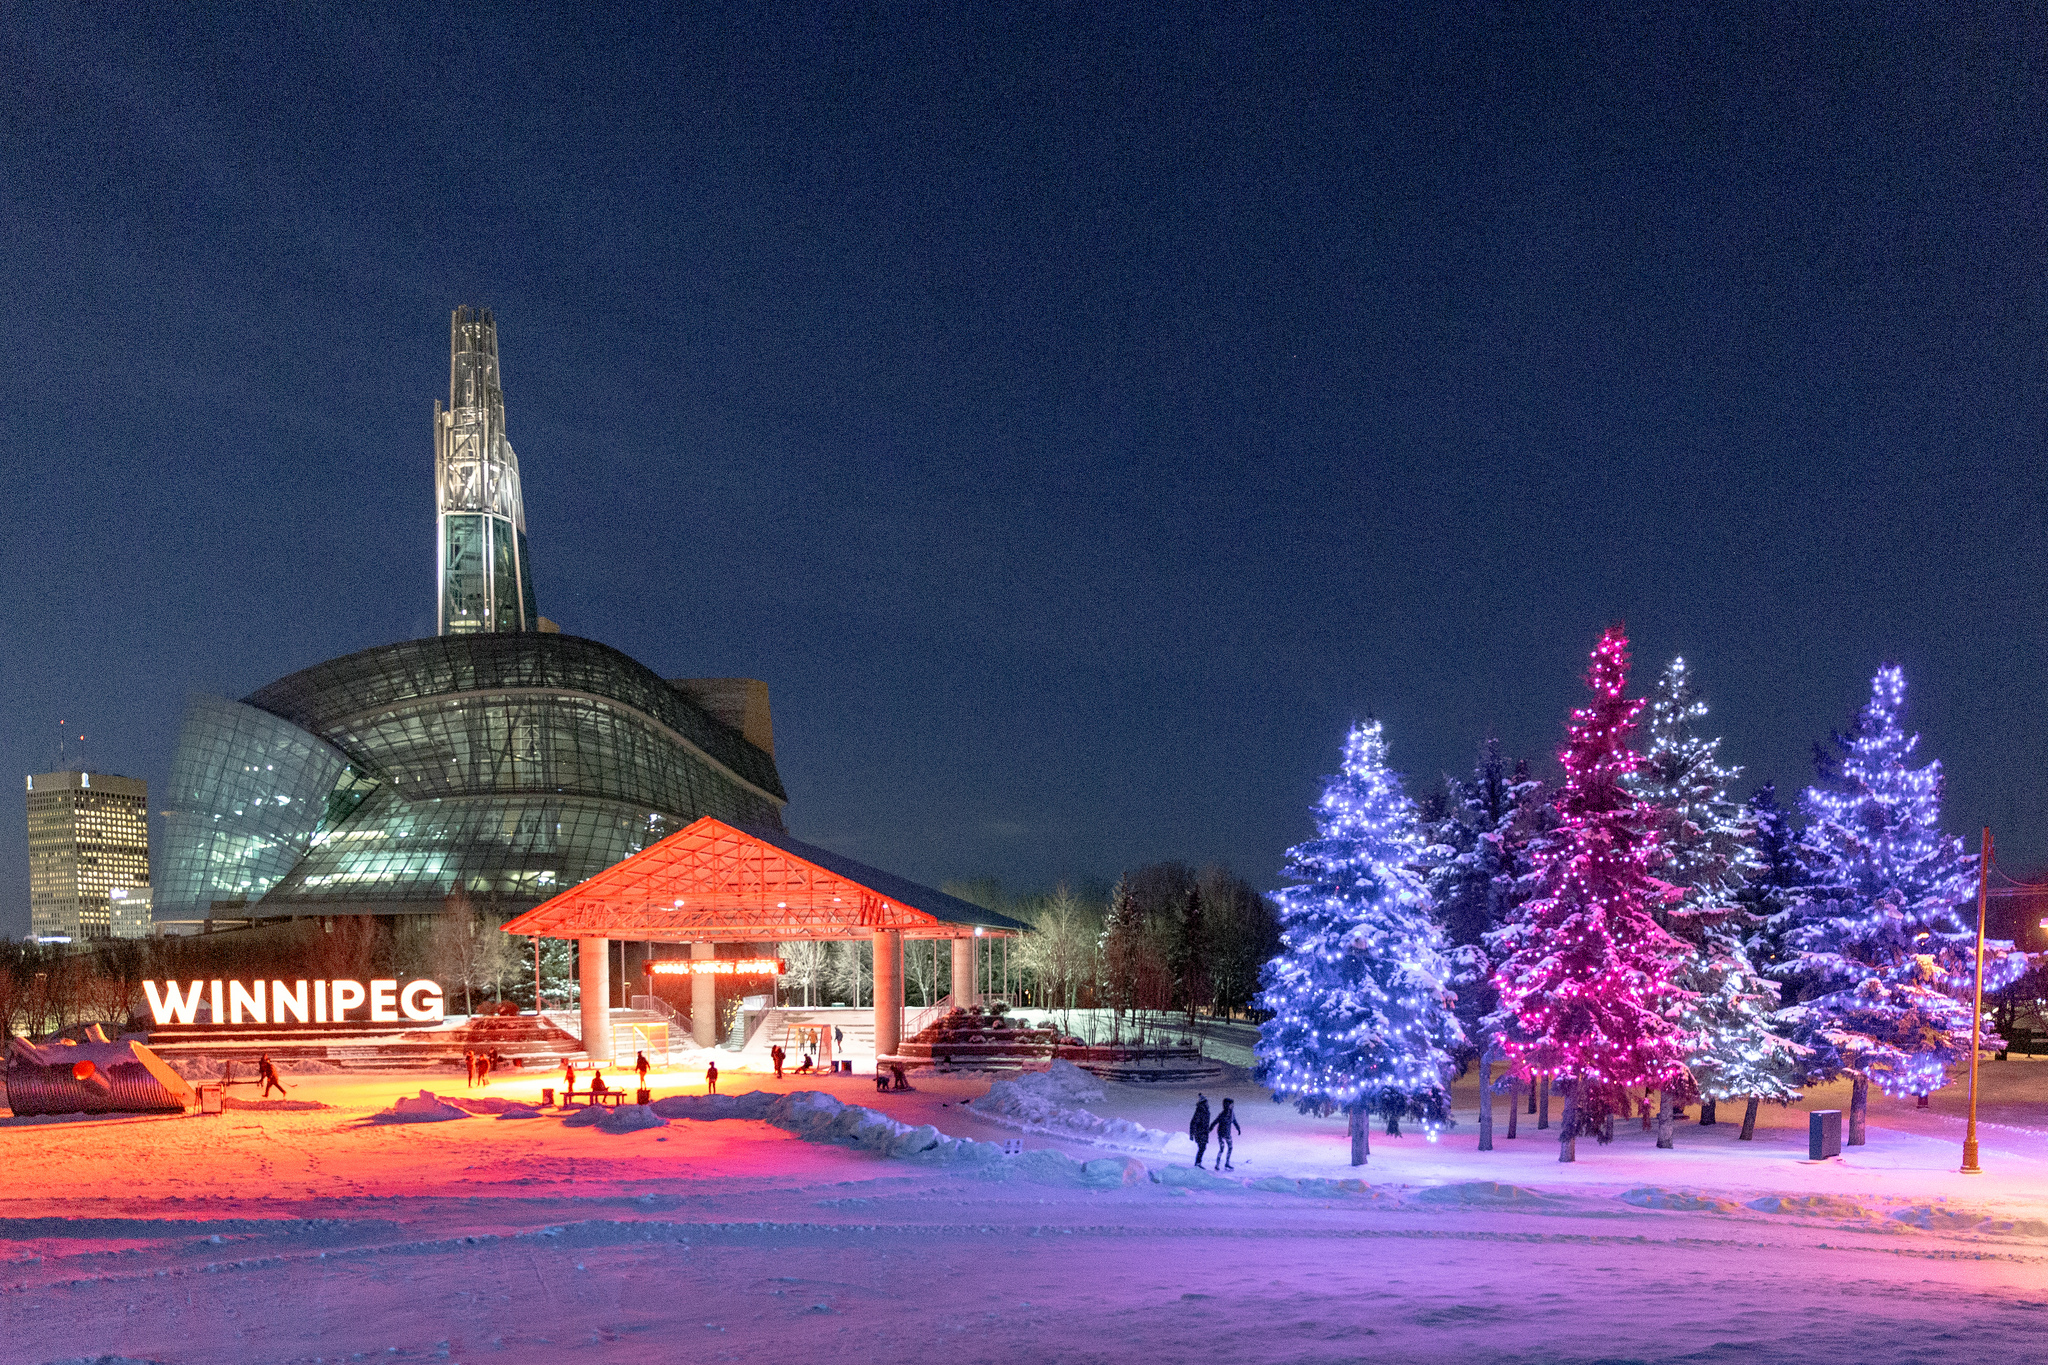 Skaters on the trail in the Arctic Glacier Winter Park at The Forks, Winnipeg Canada